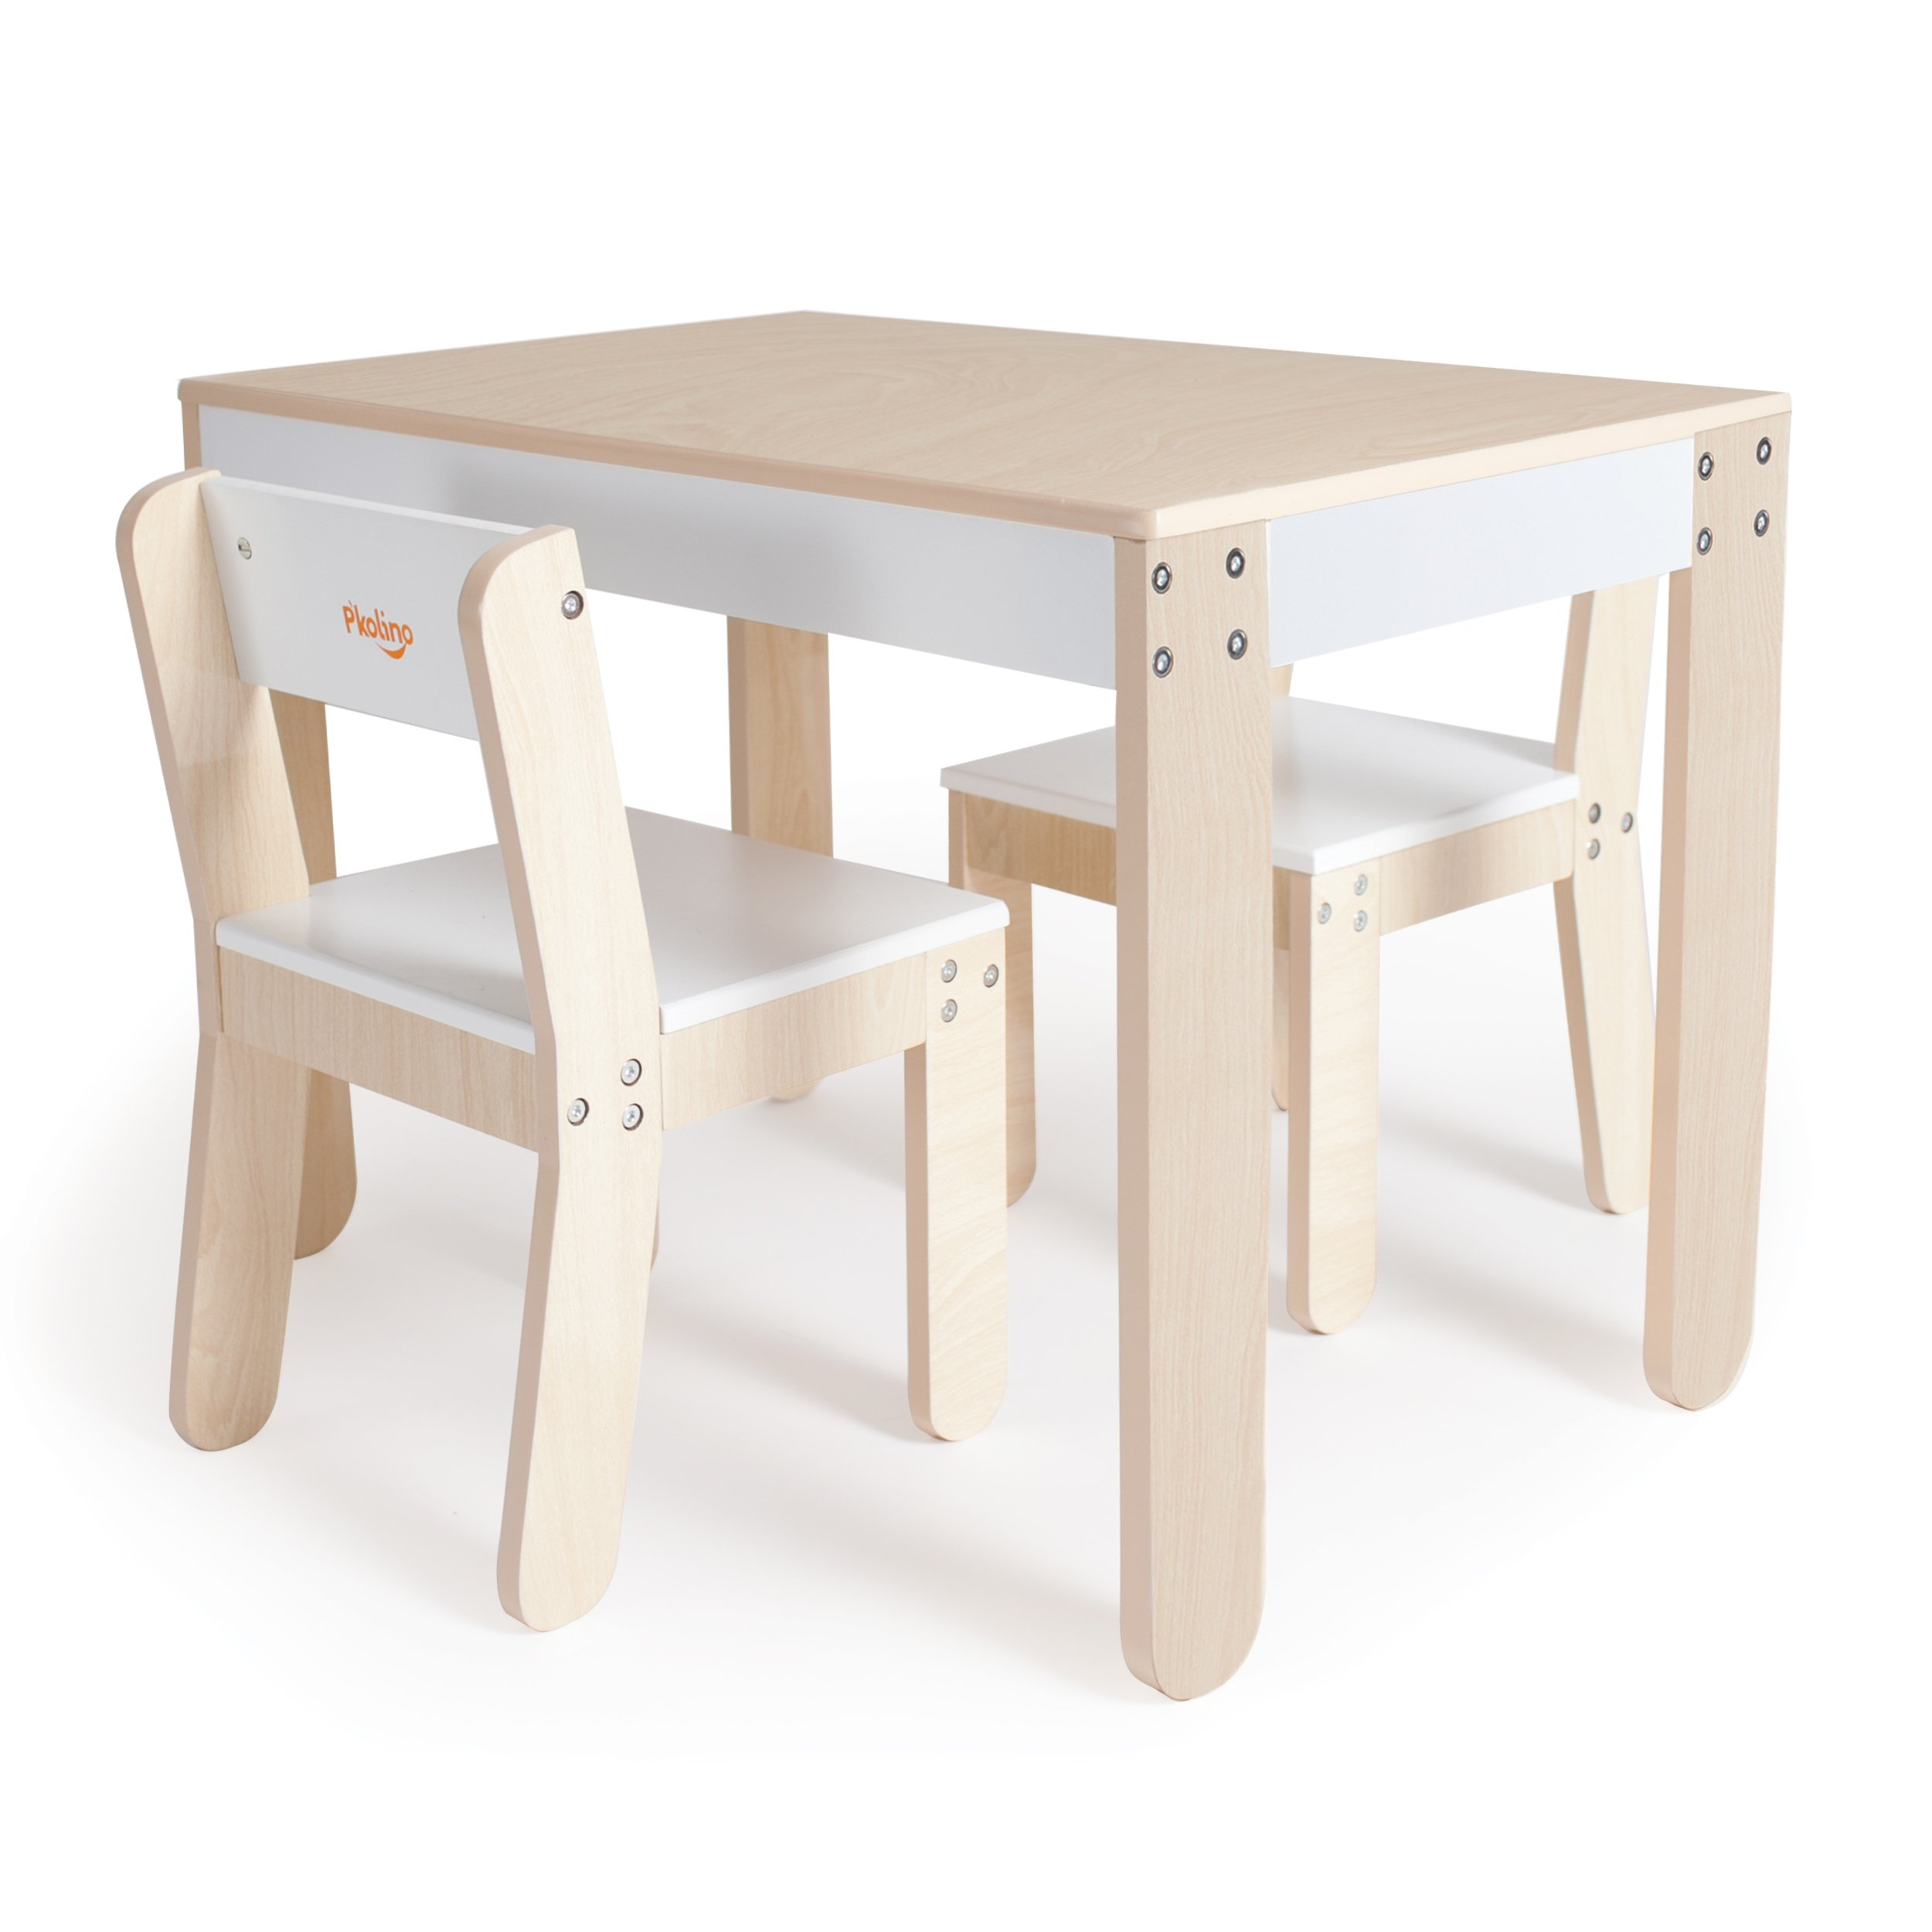 P'kolino Little One's Table and Chairs, White by P'Kolino